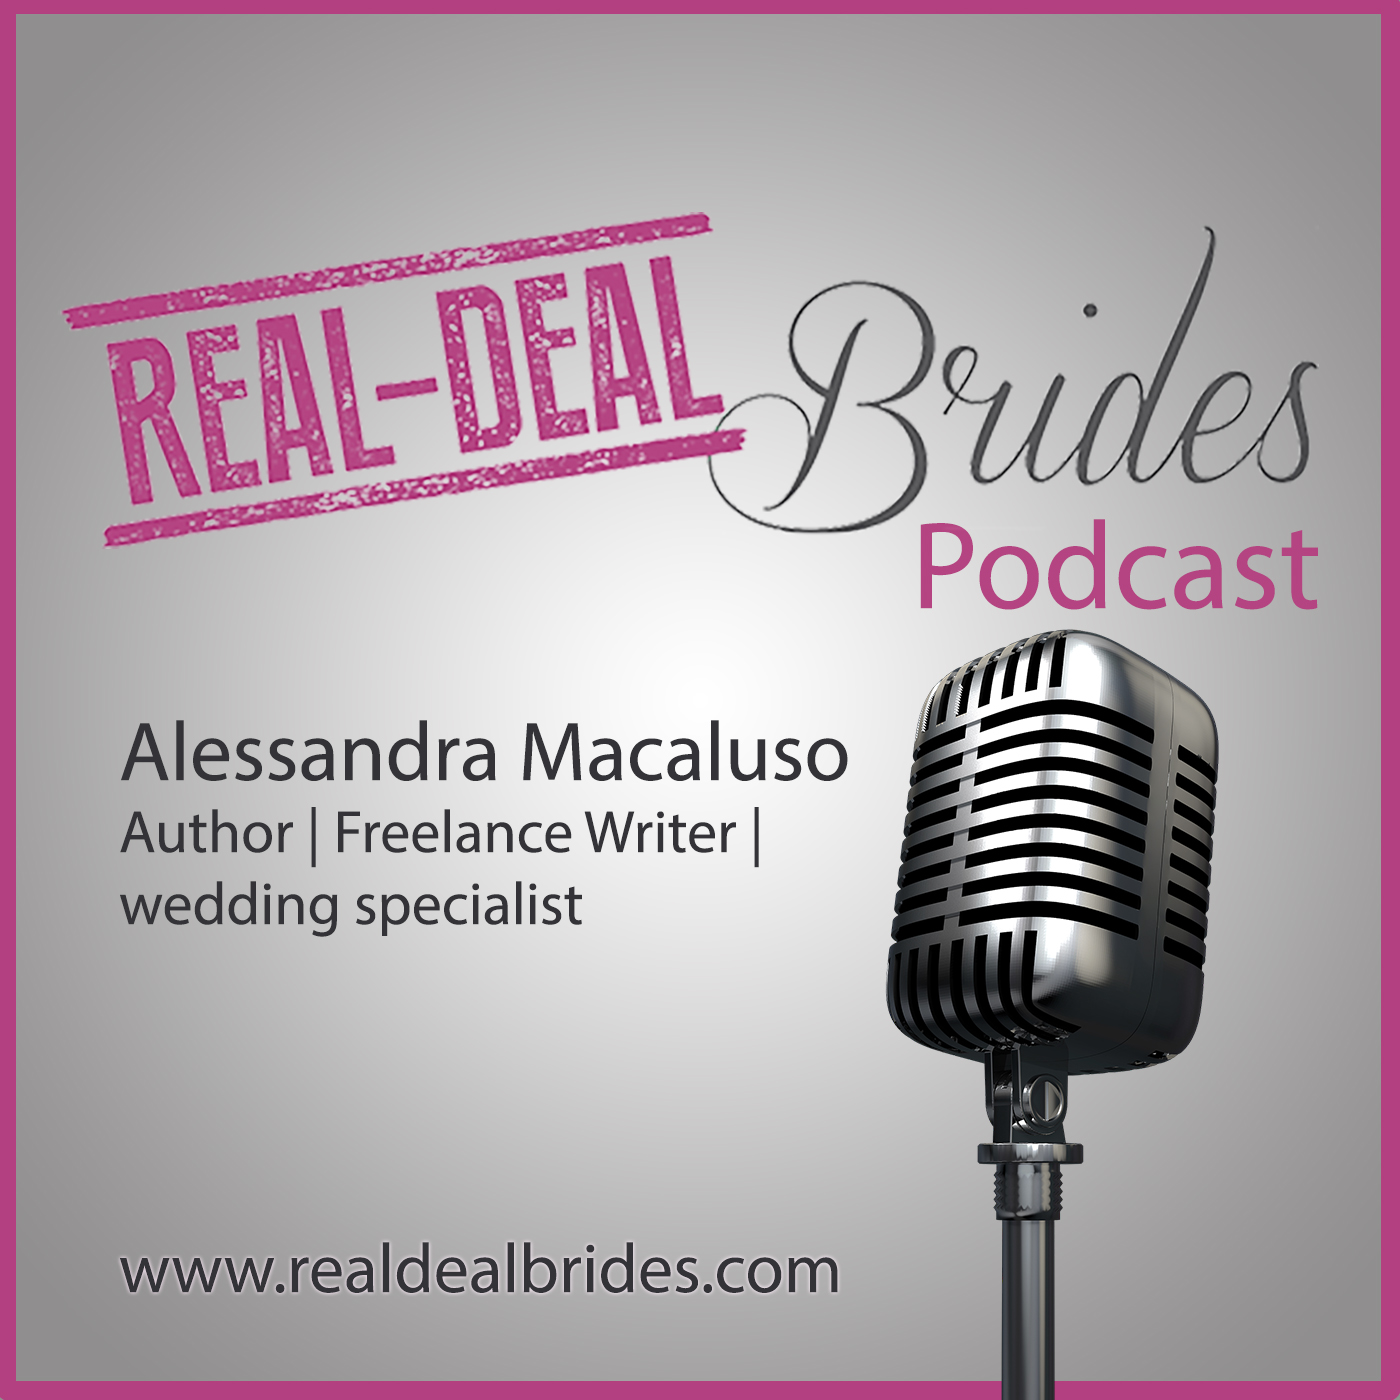 Real-Deal Brides Podcast